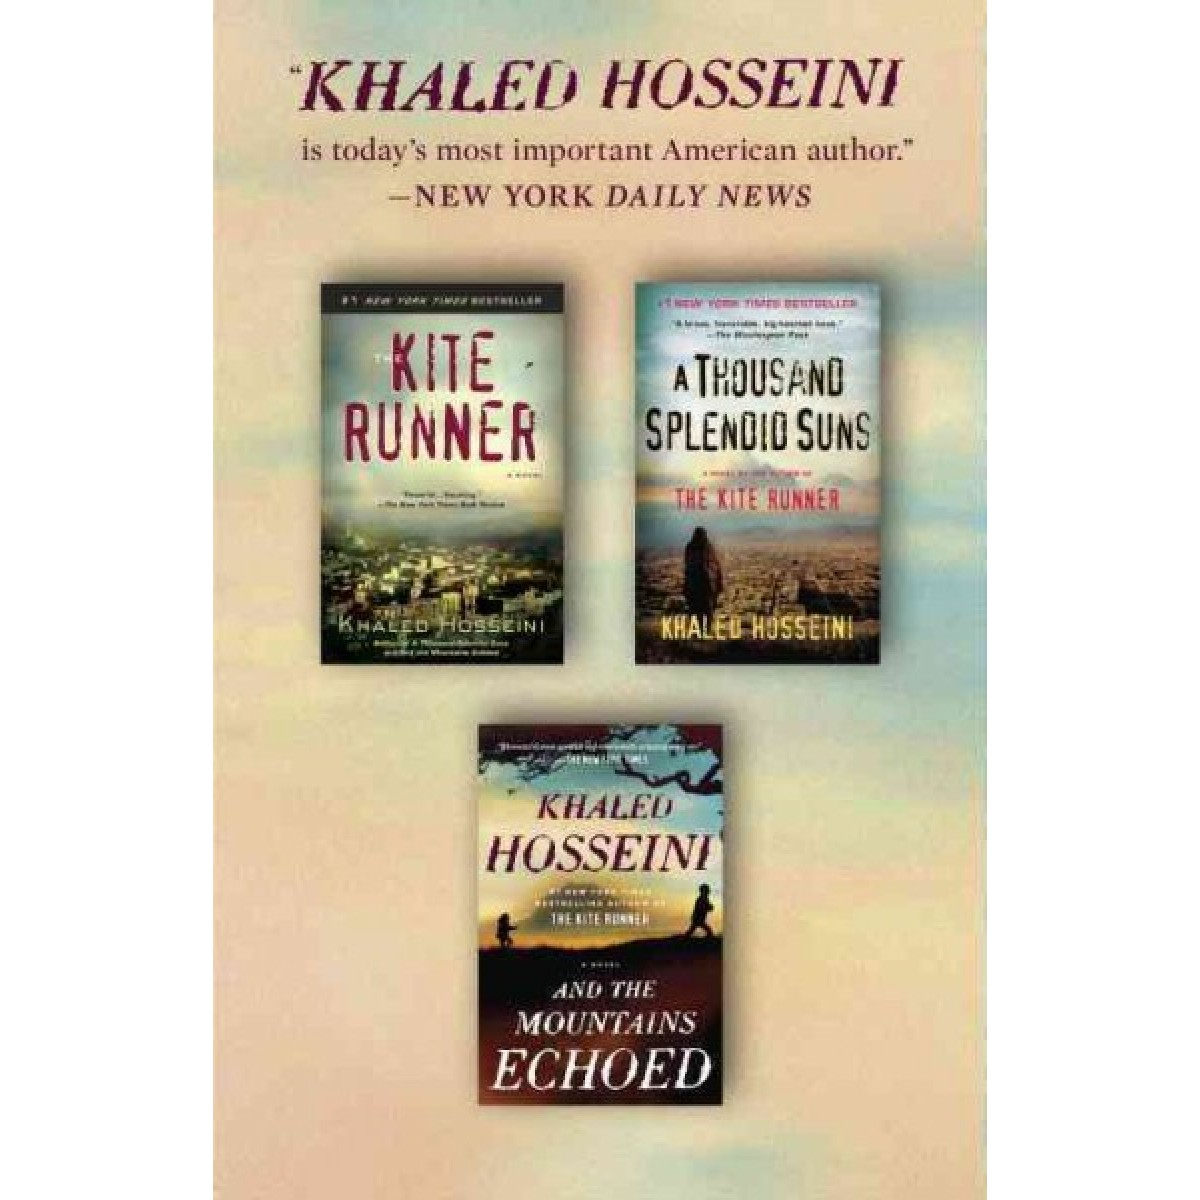 the kite runner a thousand splendid suns and the mountains the kite runner a thousand splendid suns and the mountains echoed box set export edition mass market paperback